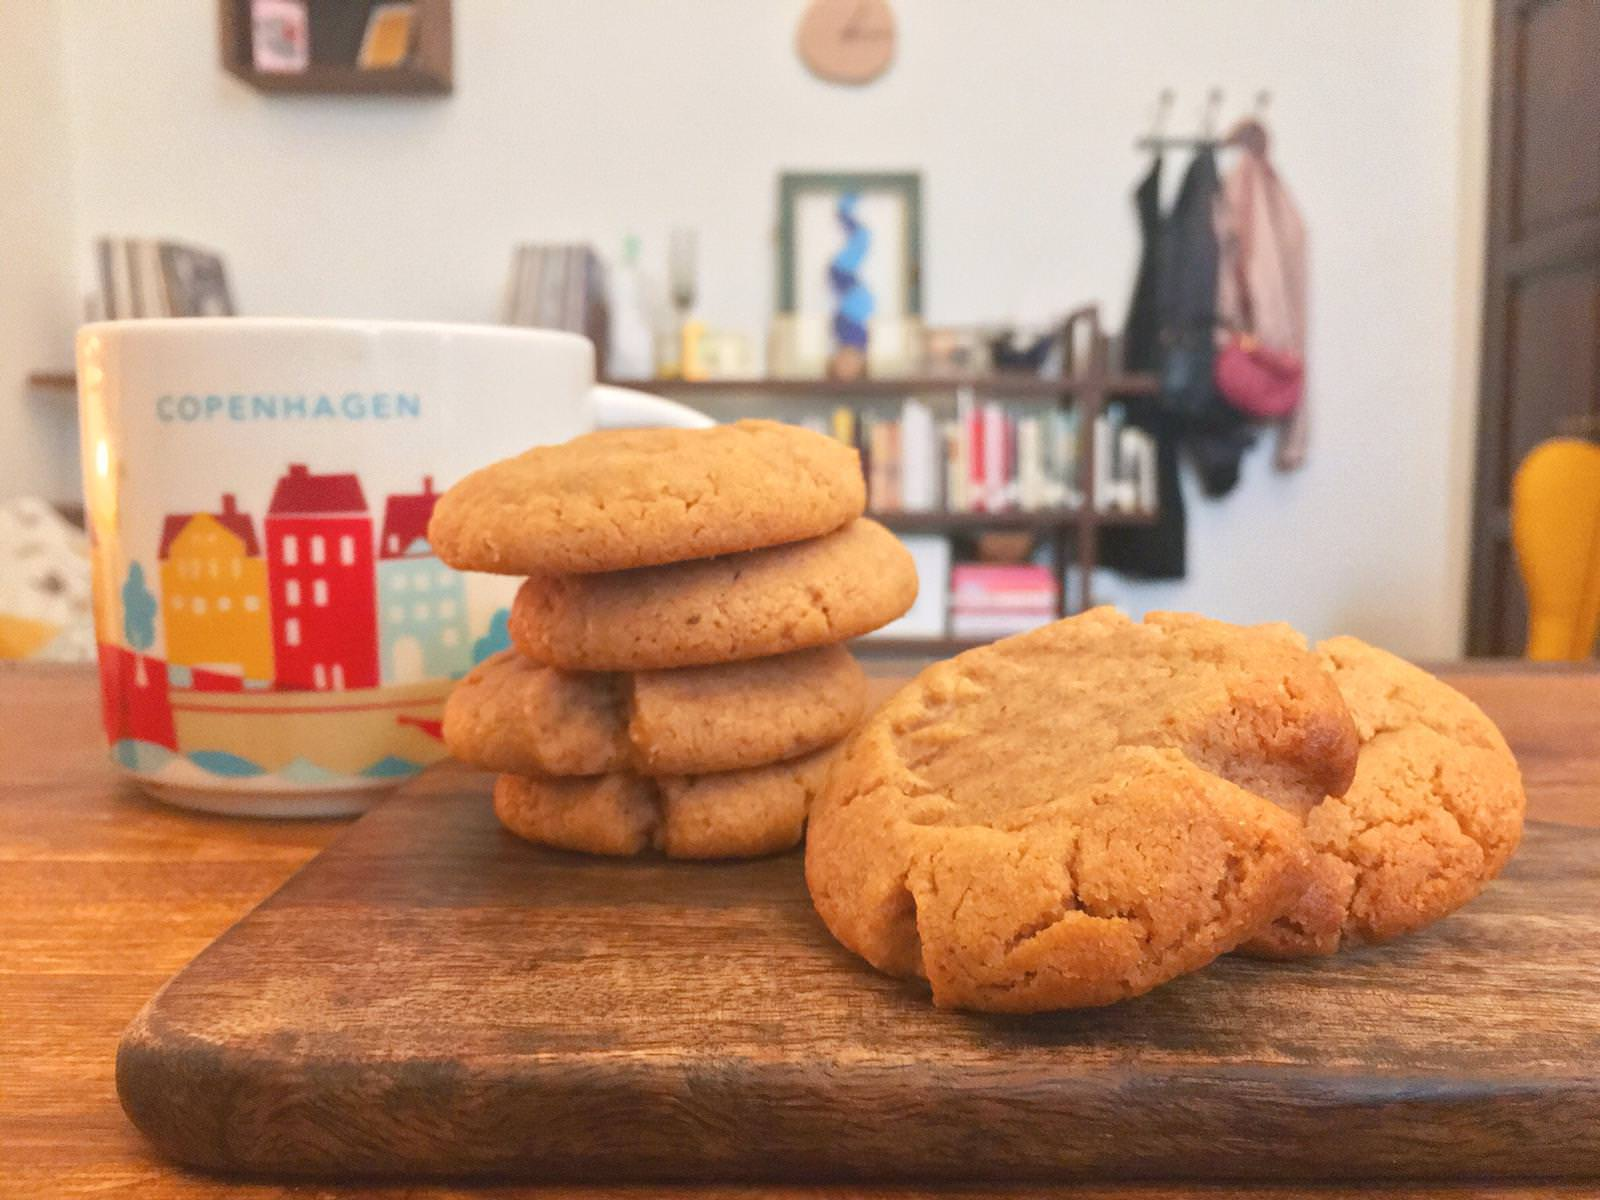 These are the most delicious, chewy peanut butter cookies. Plain and simple. This recipe came together in less than 30 minutes—including baking time!